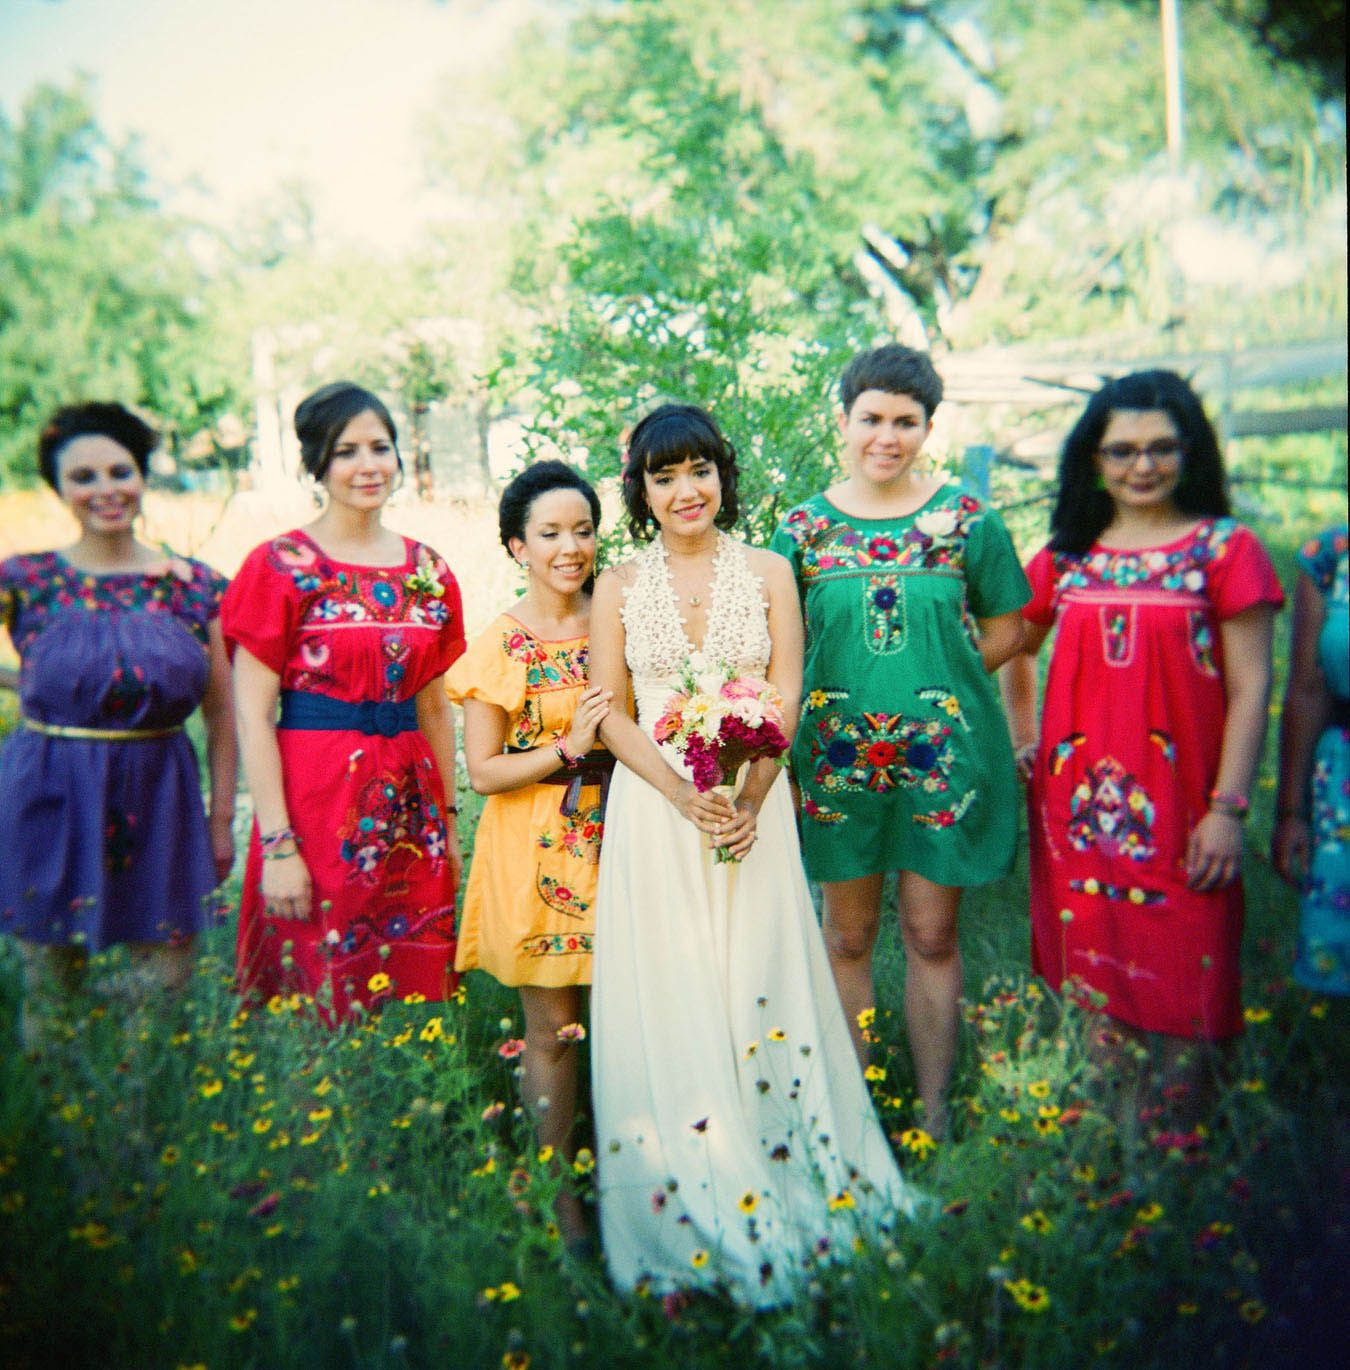 A Bohemian Mexican American Wedding Felicia Ariel Super Cute Party Traditional